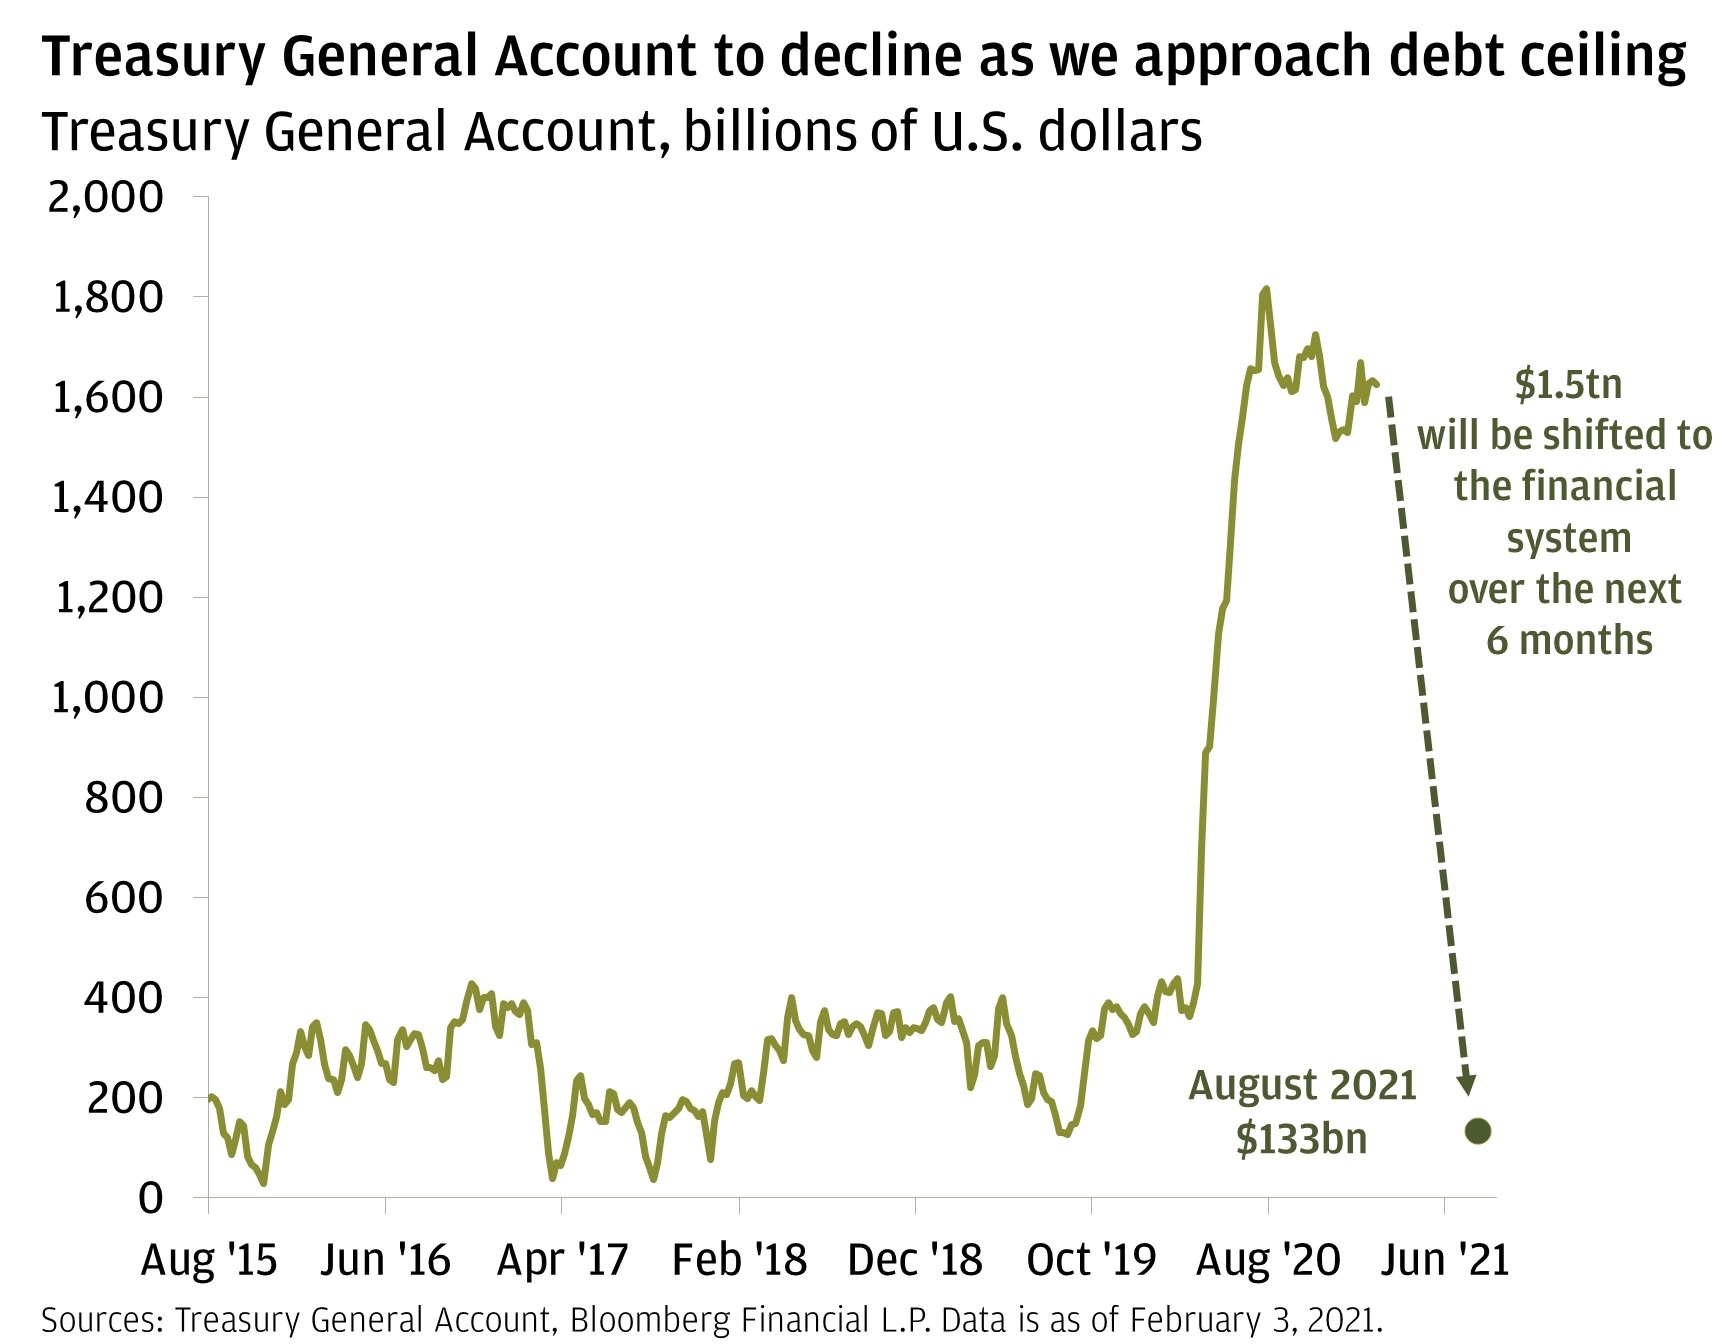 Chart 4: This chart shows the size of the Treasury's General Account from August 1, 2015, to February 3, 2021, in billions of U.S. dollars.